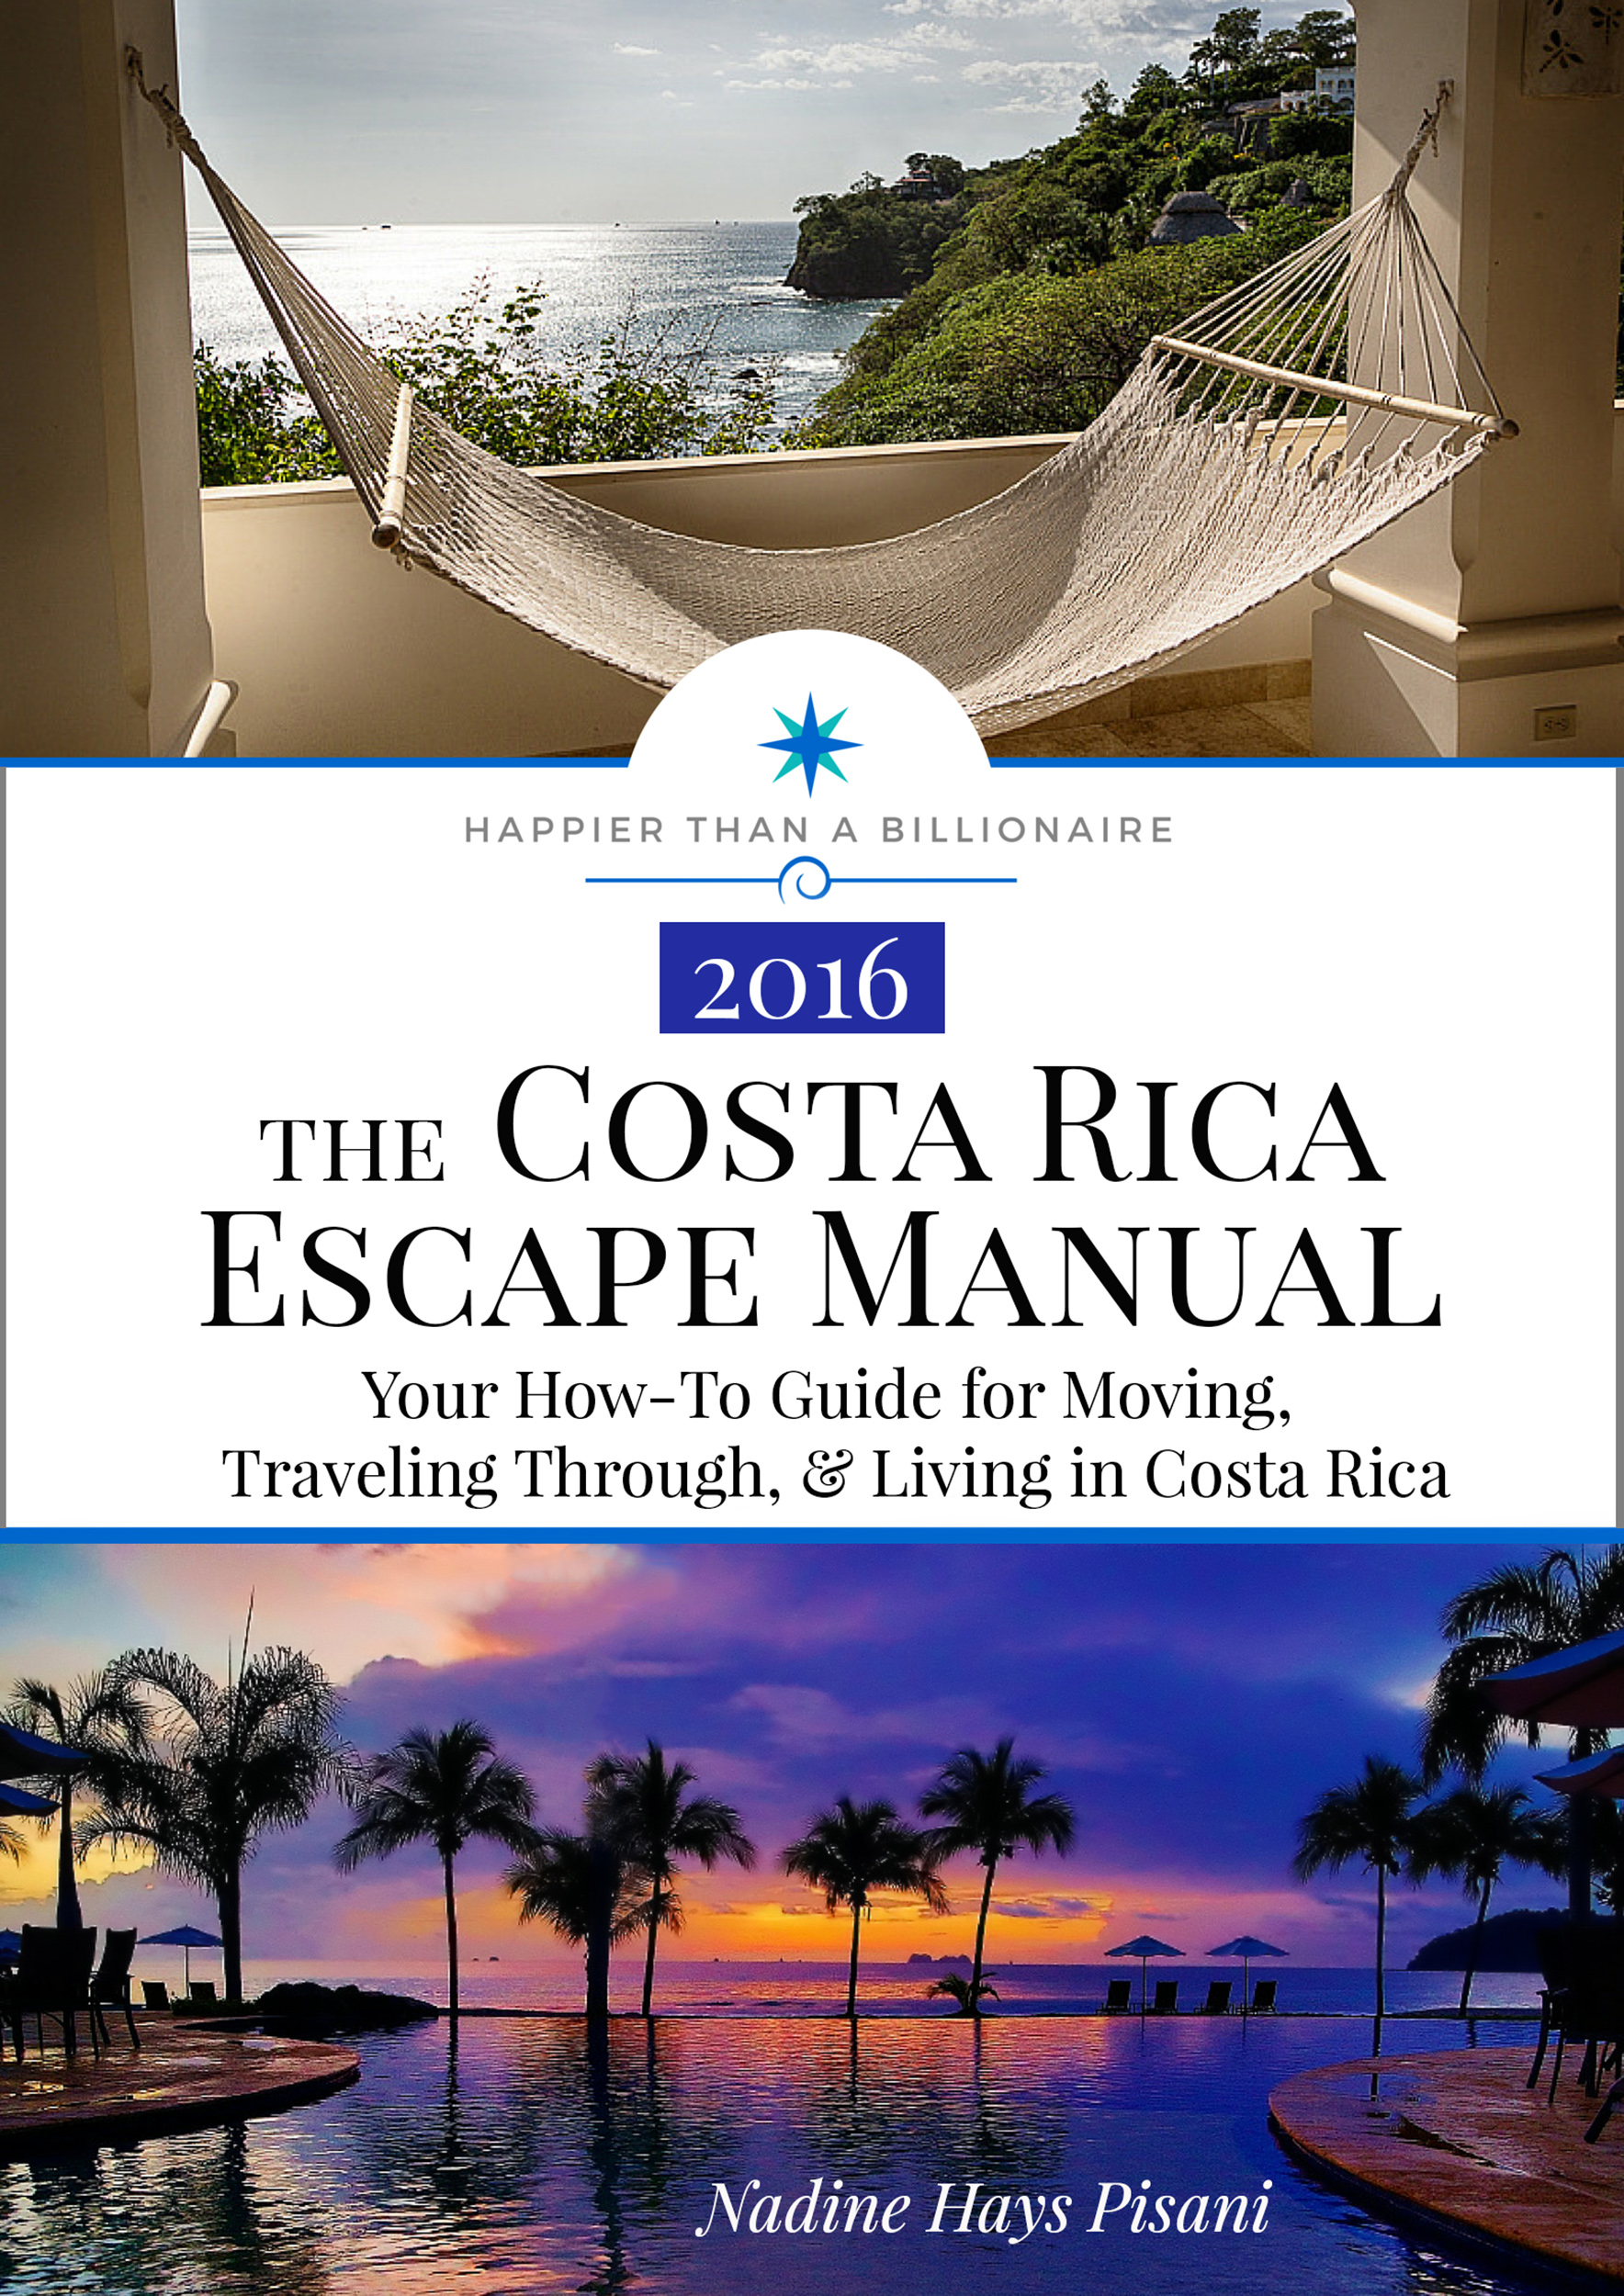 The Costa Rica Escape Manual